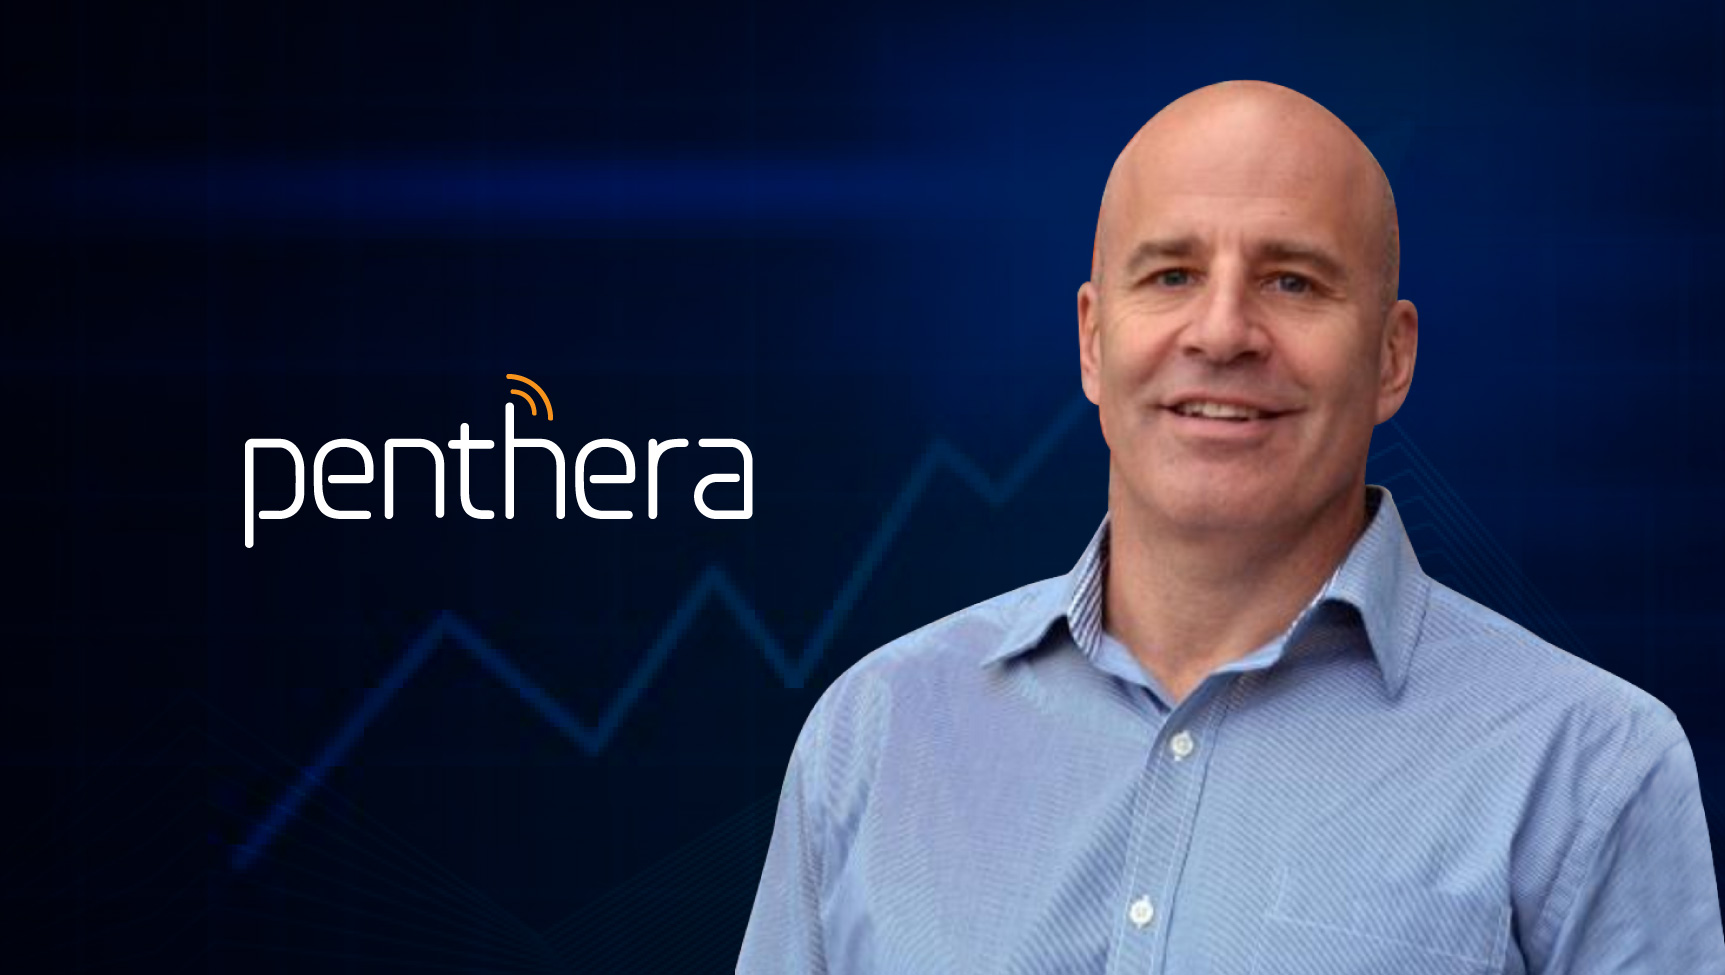 SalesTech Interview with Daniel Hurwitz, Chief Revenue Officer At Penthera